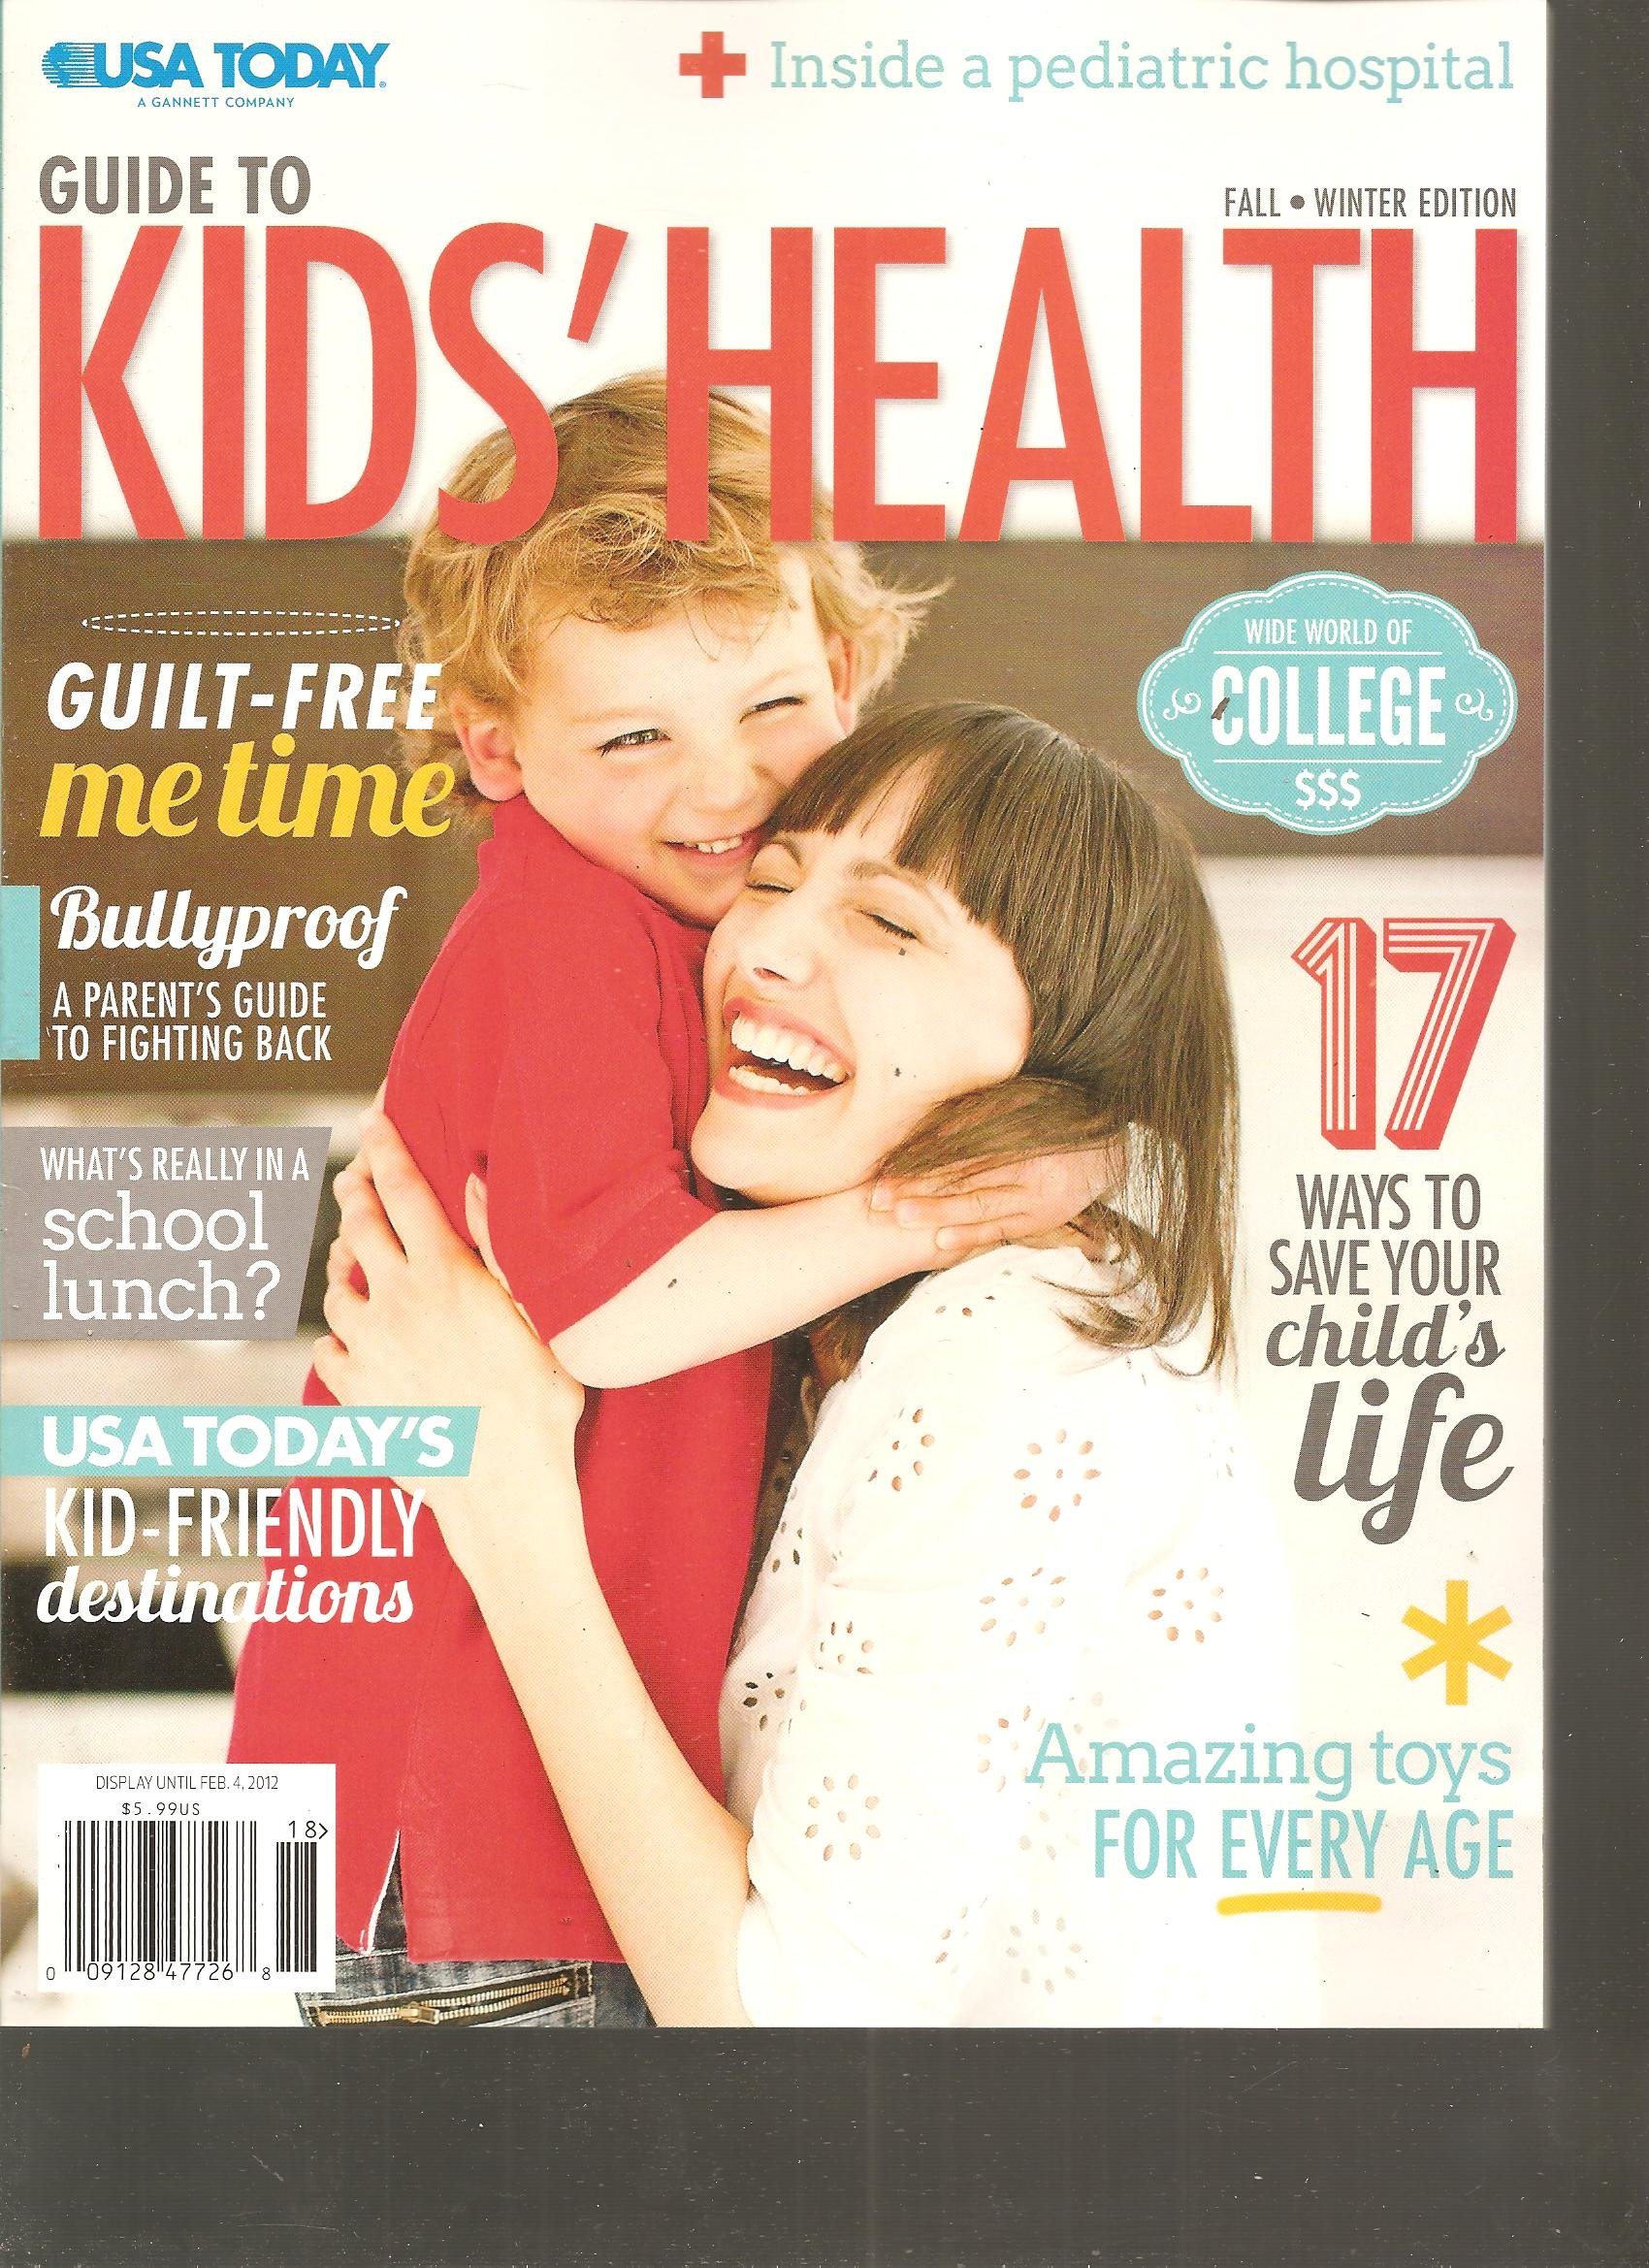 Download USA Today Guide to Kid's Health Magazine (Guilt free me time, Fall Winter 2011 2012) PDF